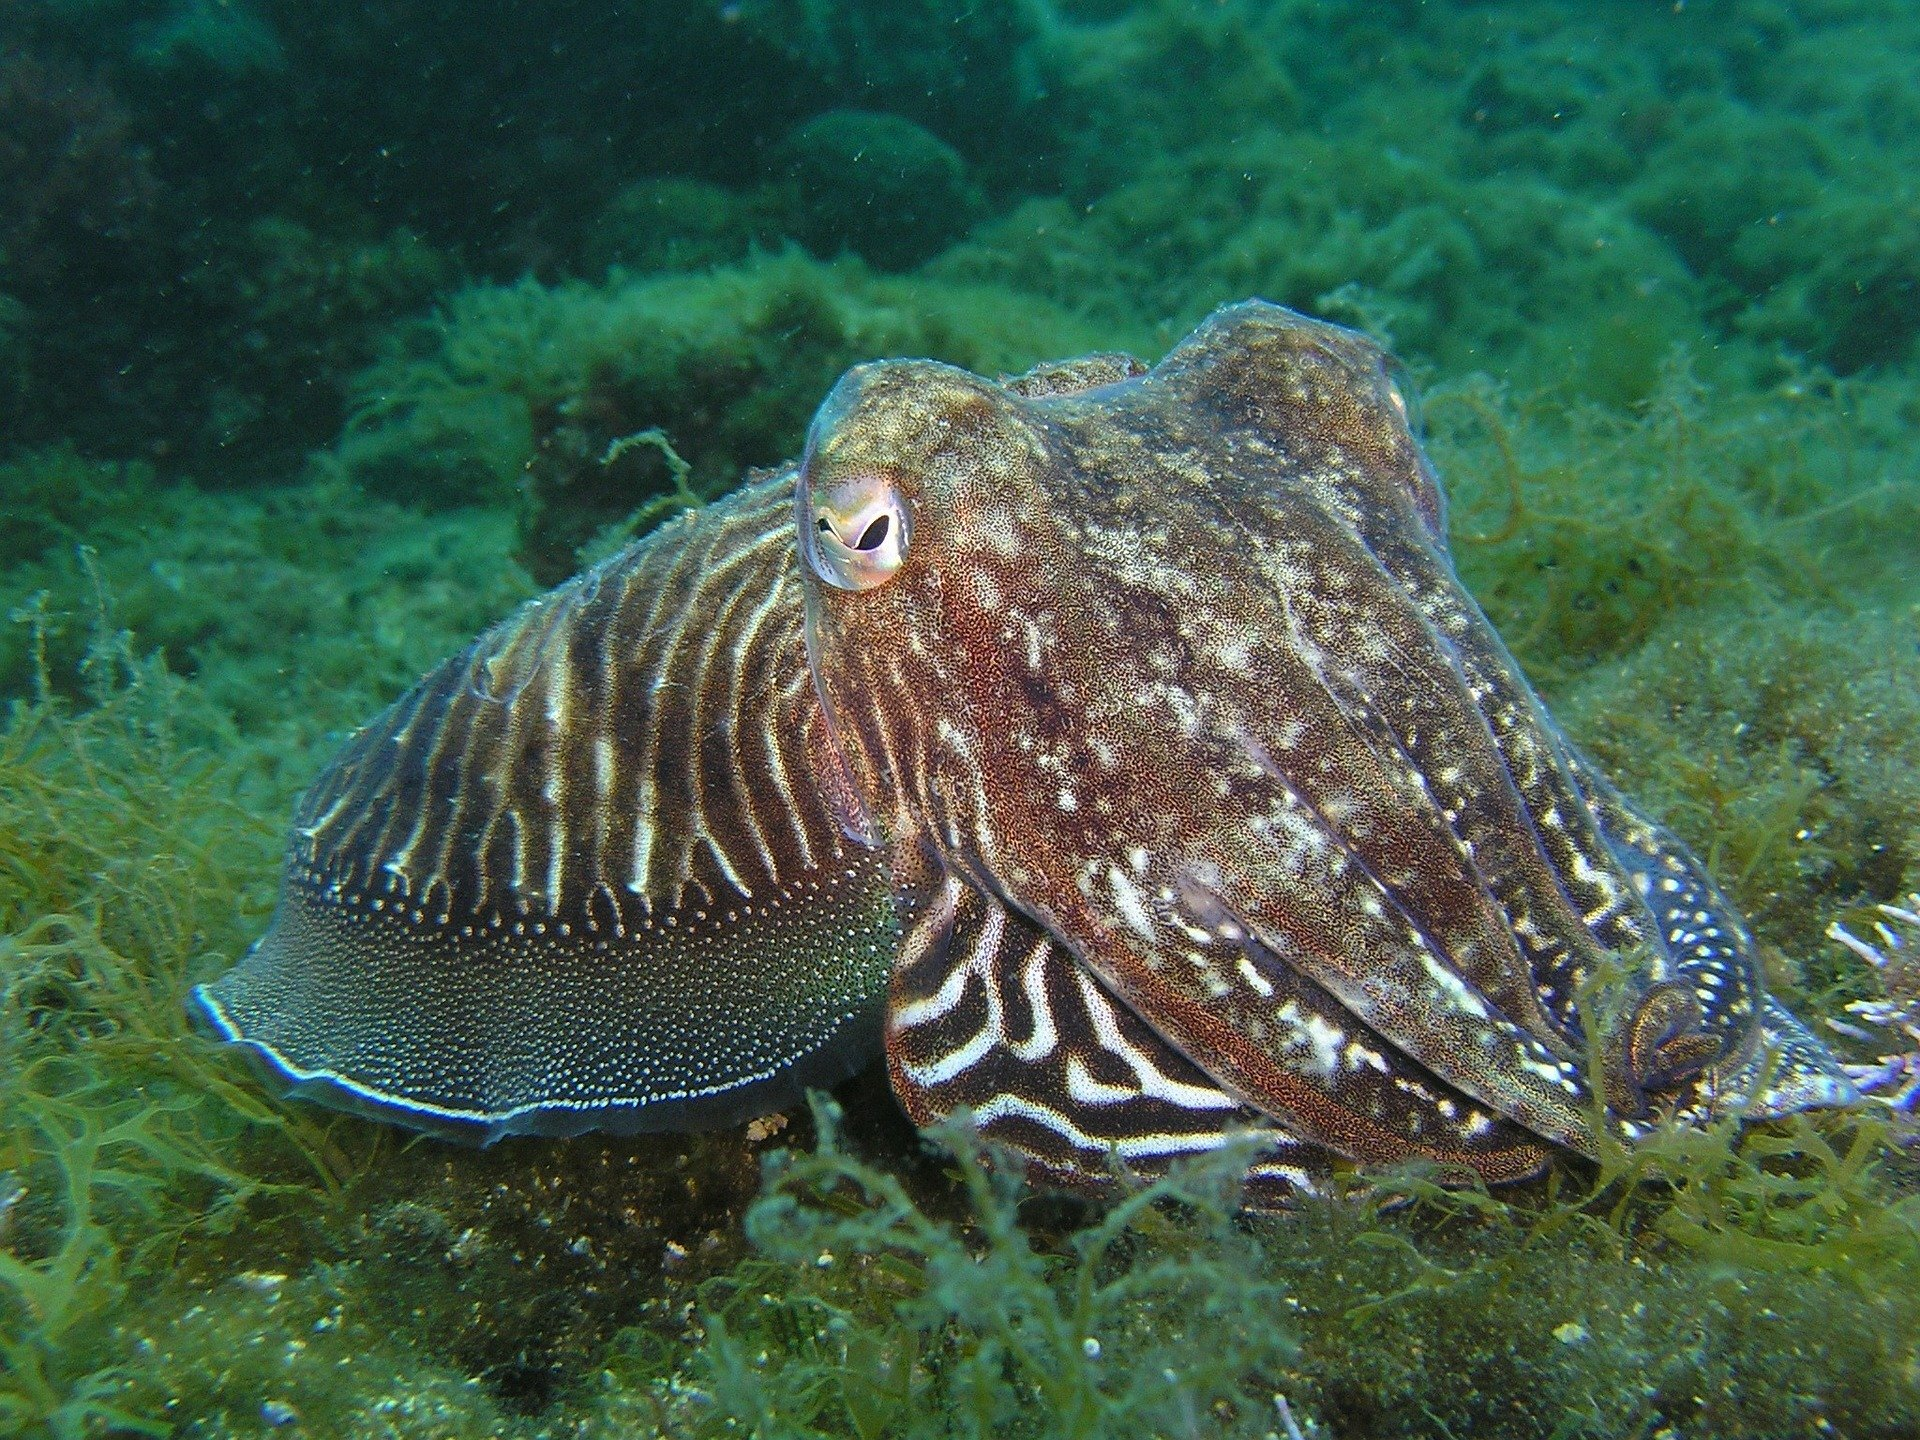 Squids' ability to tune color and brightness of their iridescence comes down to subtle mechanism - Phys.org